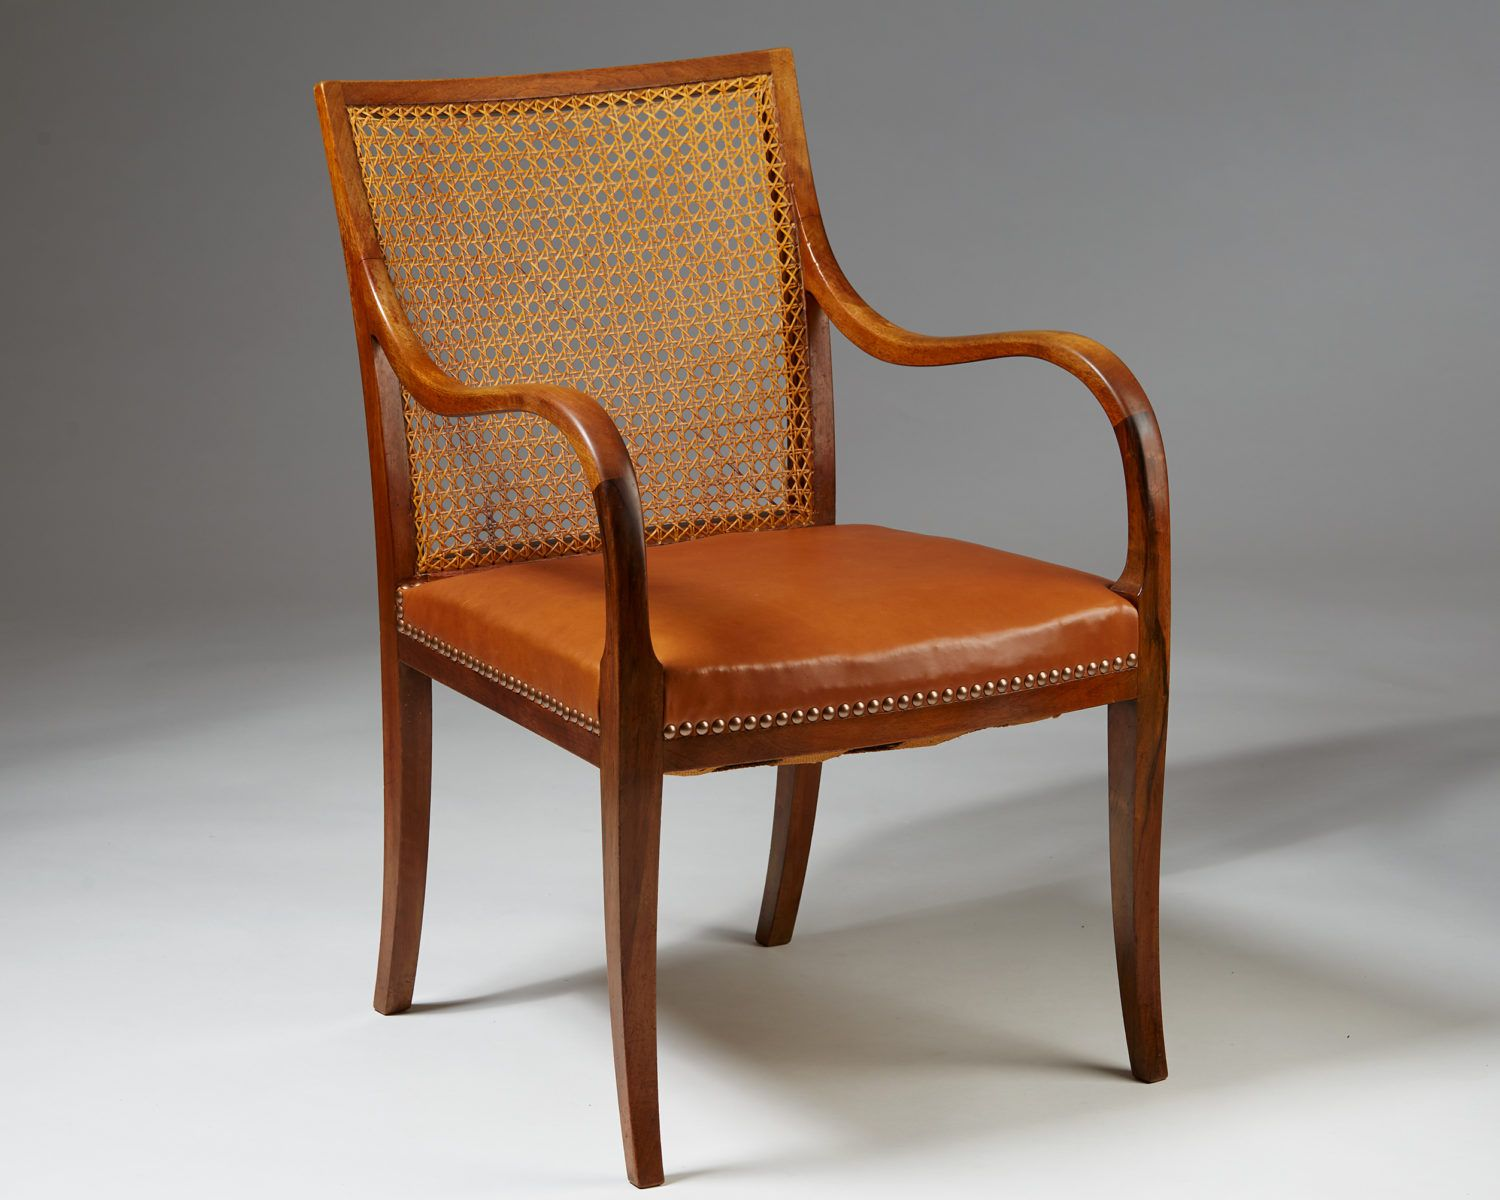 Chair Designed By Frits Henningsen Modernity Chair Design Chair Design